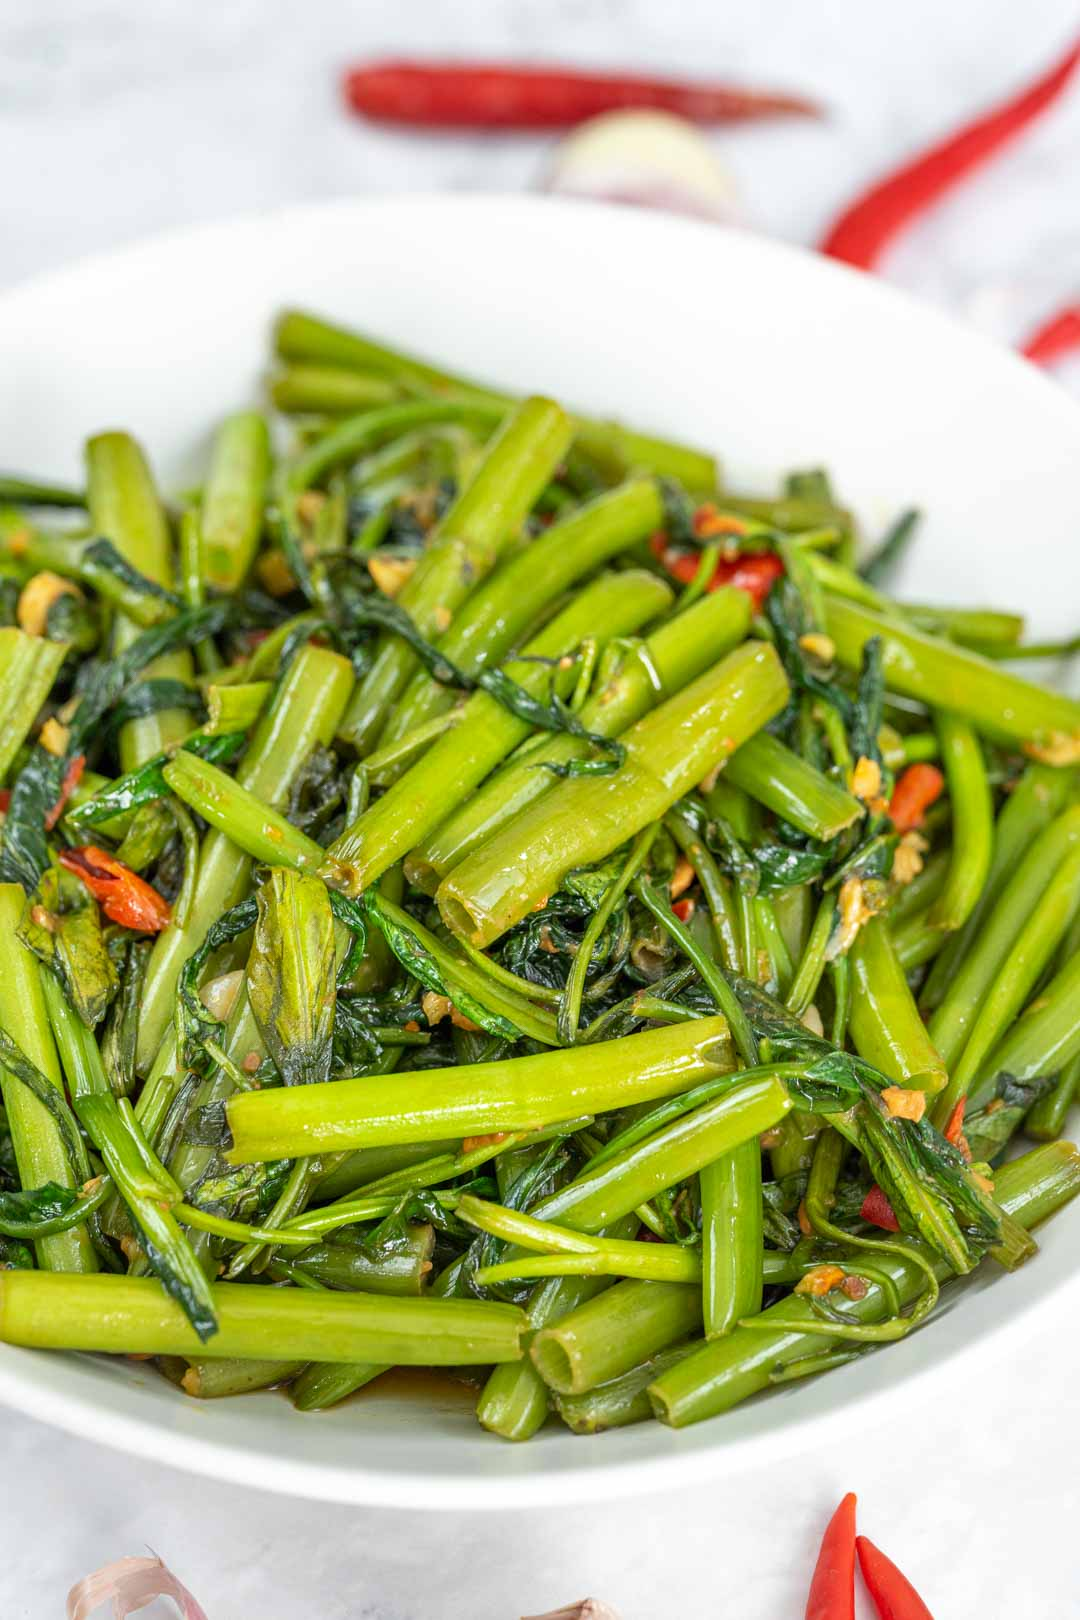 Morning Glory Vegetable : morning, glory, vegetable, Stir-Fried, Water, Spinach, Recipe, Cooking